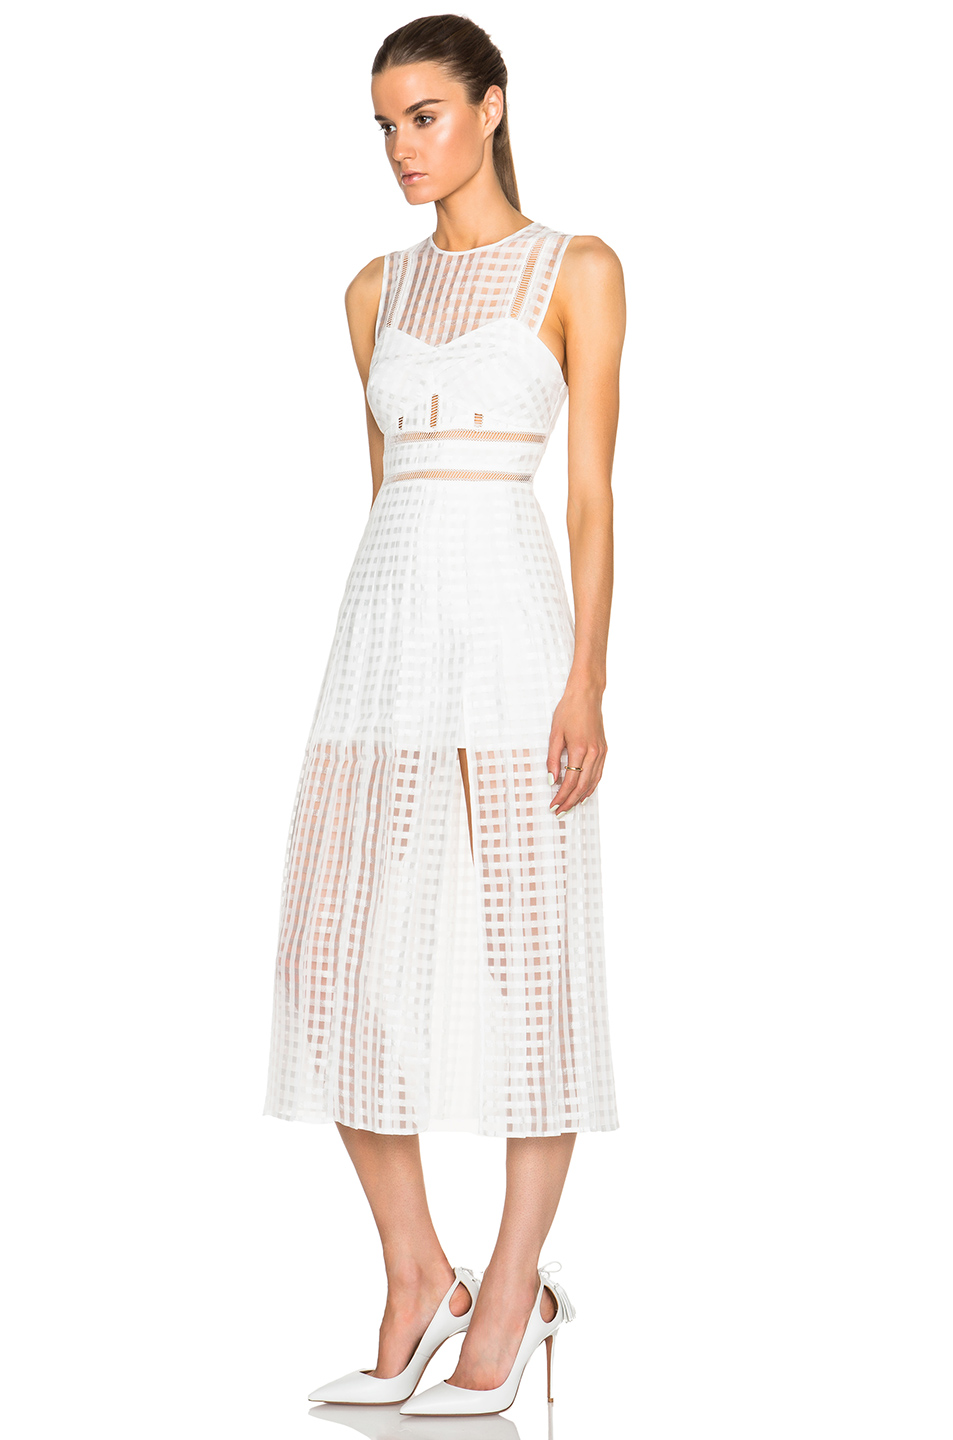 ac333216cc10d Herve Leger White Transparent Hollow Lined Long Dress